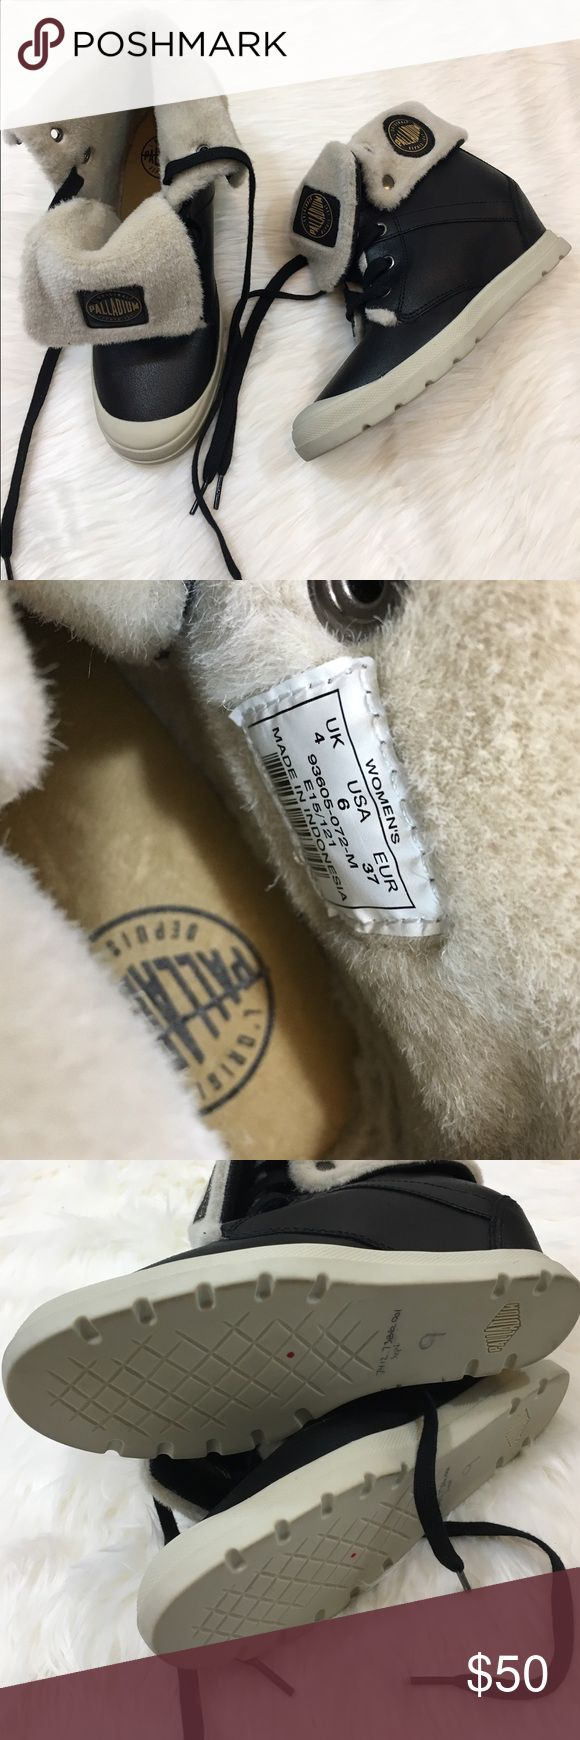 NEW Palladium fur lined wedge booties Brand new never worn. Fur lined. Women's Size 6. Wedge heel Palladium Shoes Ankle Boots & Booties